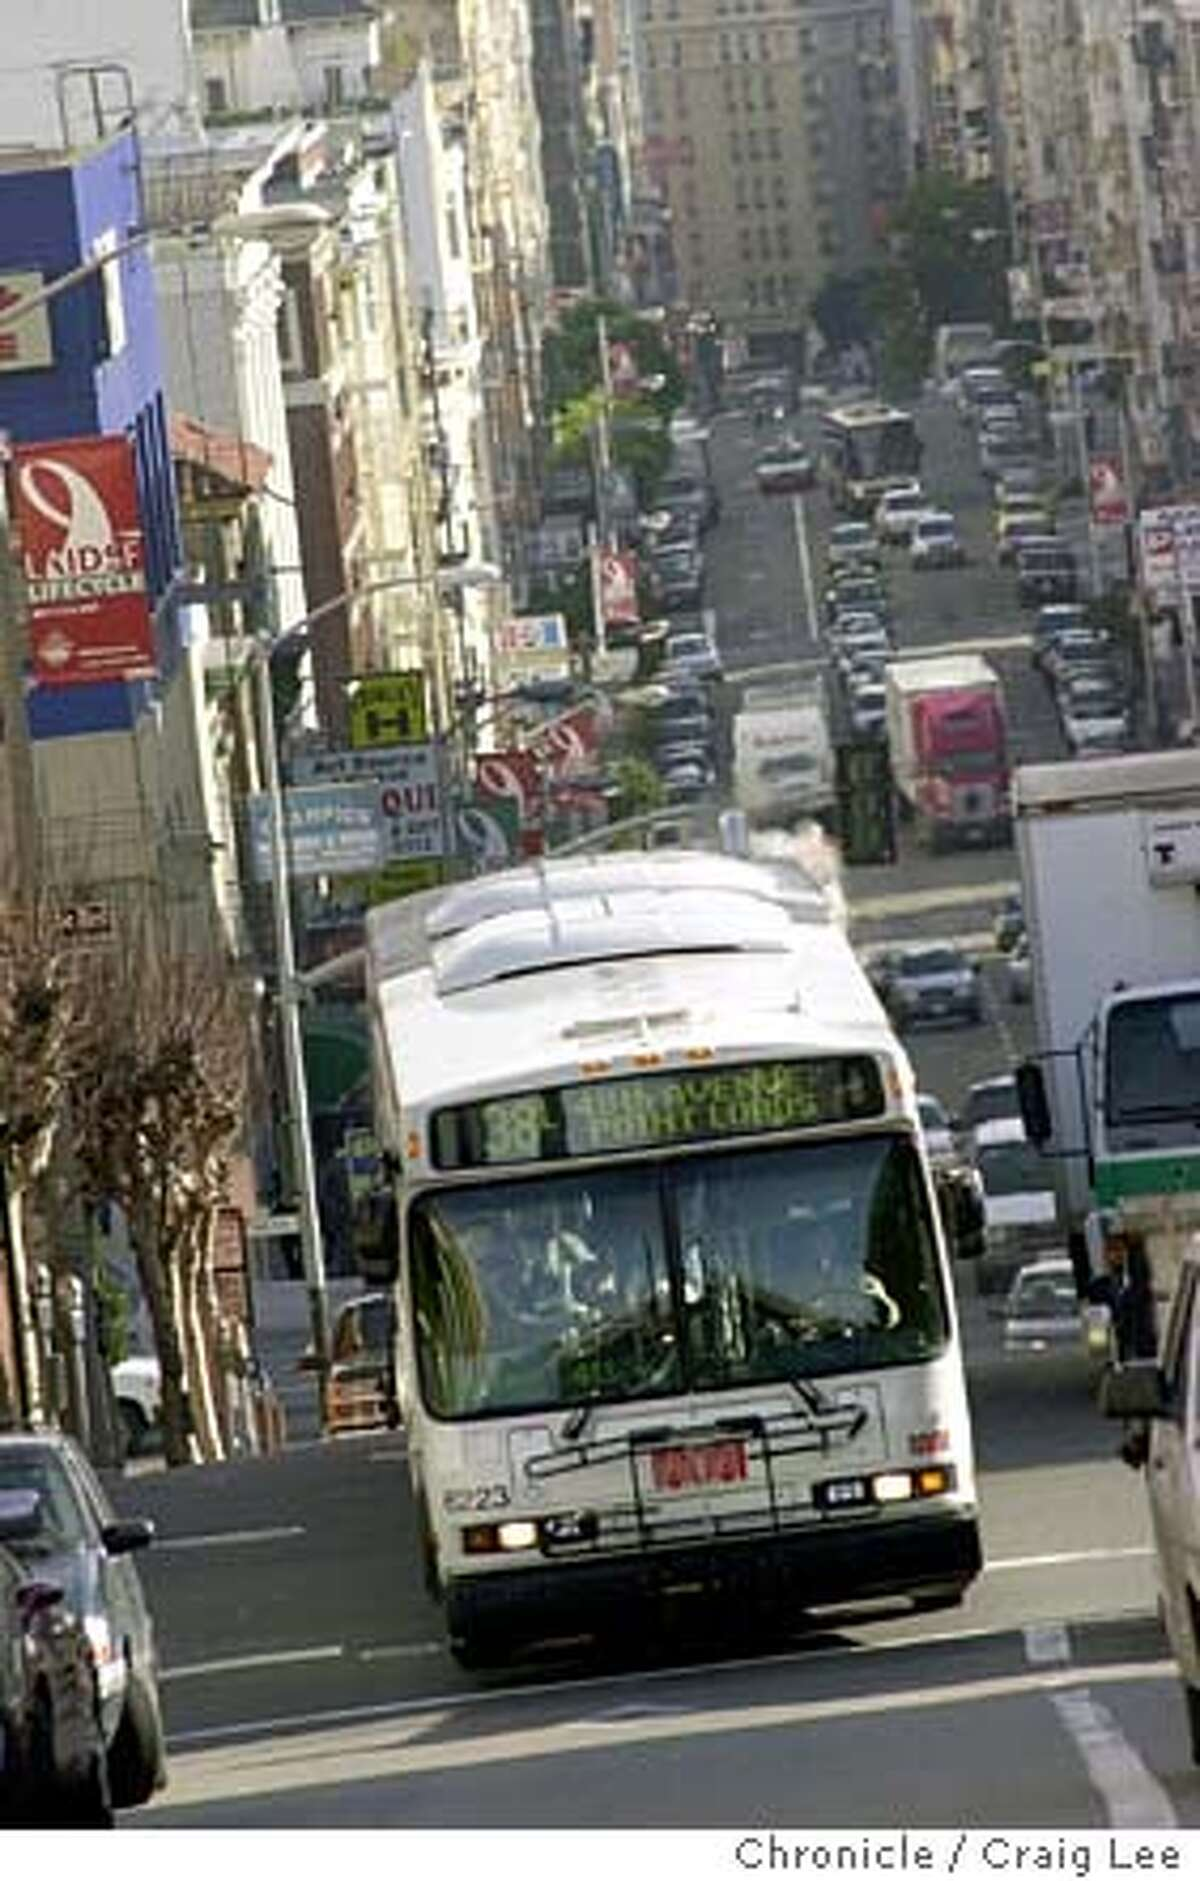 DIESEL-C-04JAN02-SN-CL Photo of one of the dirty diesel spewing Muni buses making it's way up Geary Blvd. Story about how Muni is continuing to buy dirty diesel buses while every other California city is converting to cleaner, quieter buses powered by natural gas. Photo by Craig Lee/San Francisco Chronicle CAT